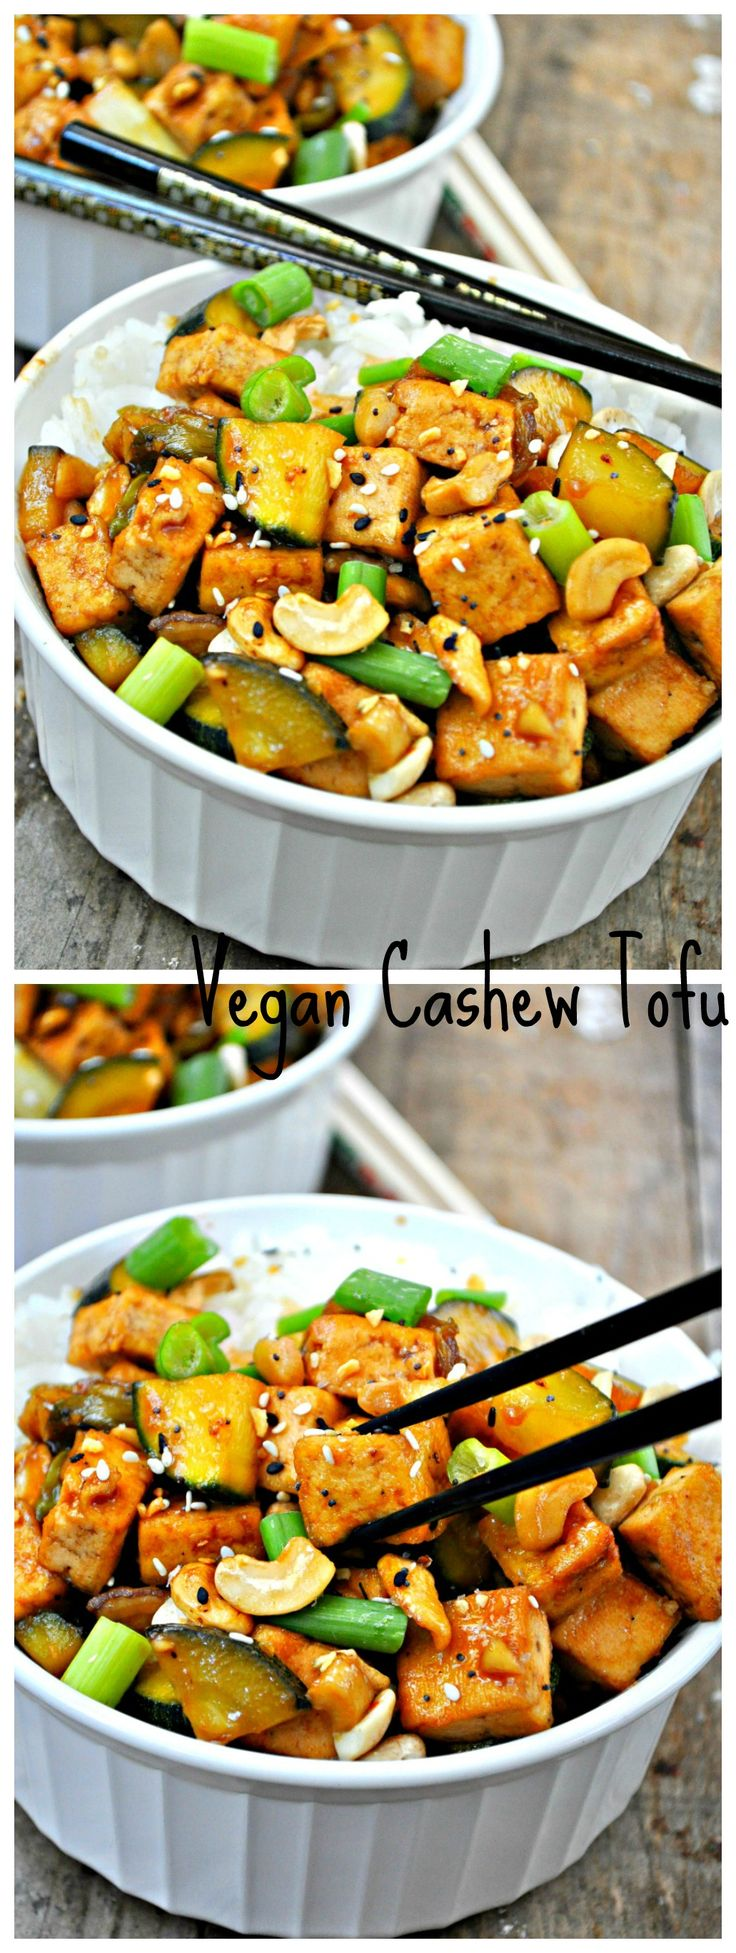 This super-simple, ultra-tasty, cashew tofu recipe is quickly becoming a VegNews staff staple.